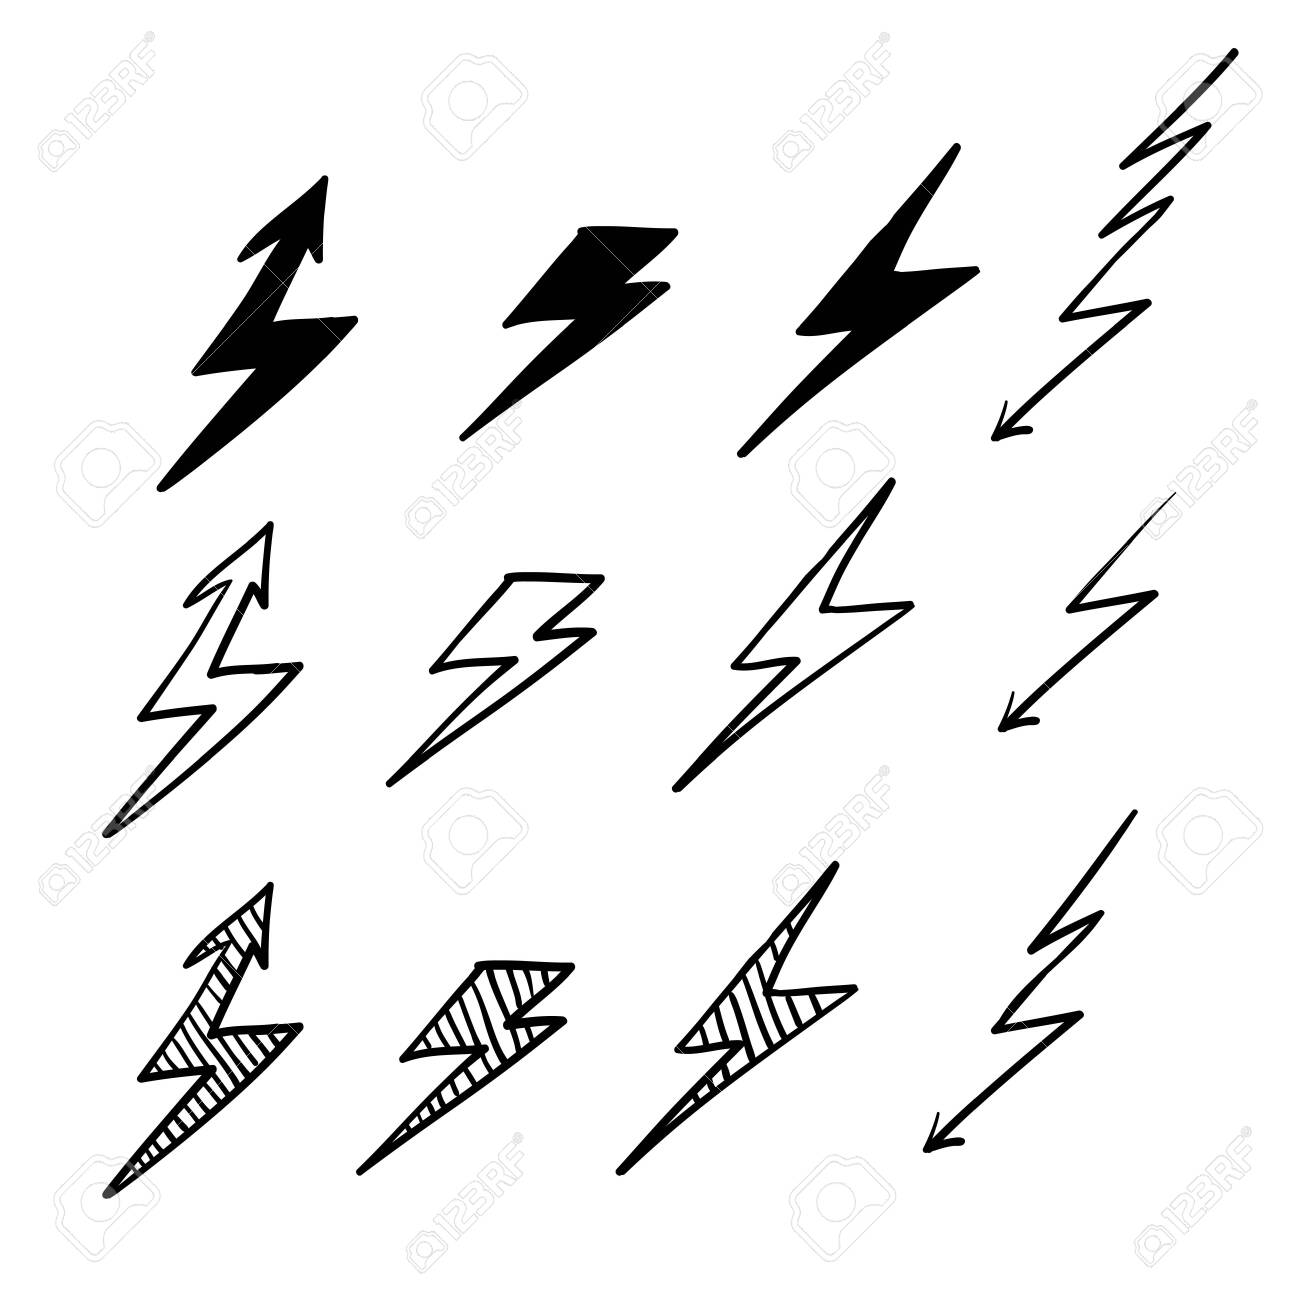 set lightning bolt thunderbolt lightning strike doodle hand royalty free cliparts vectors and stock illustration image 137781931 set lightning bolt thunderbolt lightning strike doodle hand